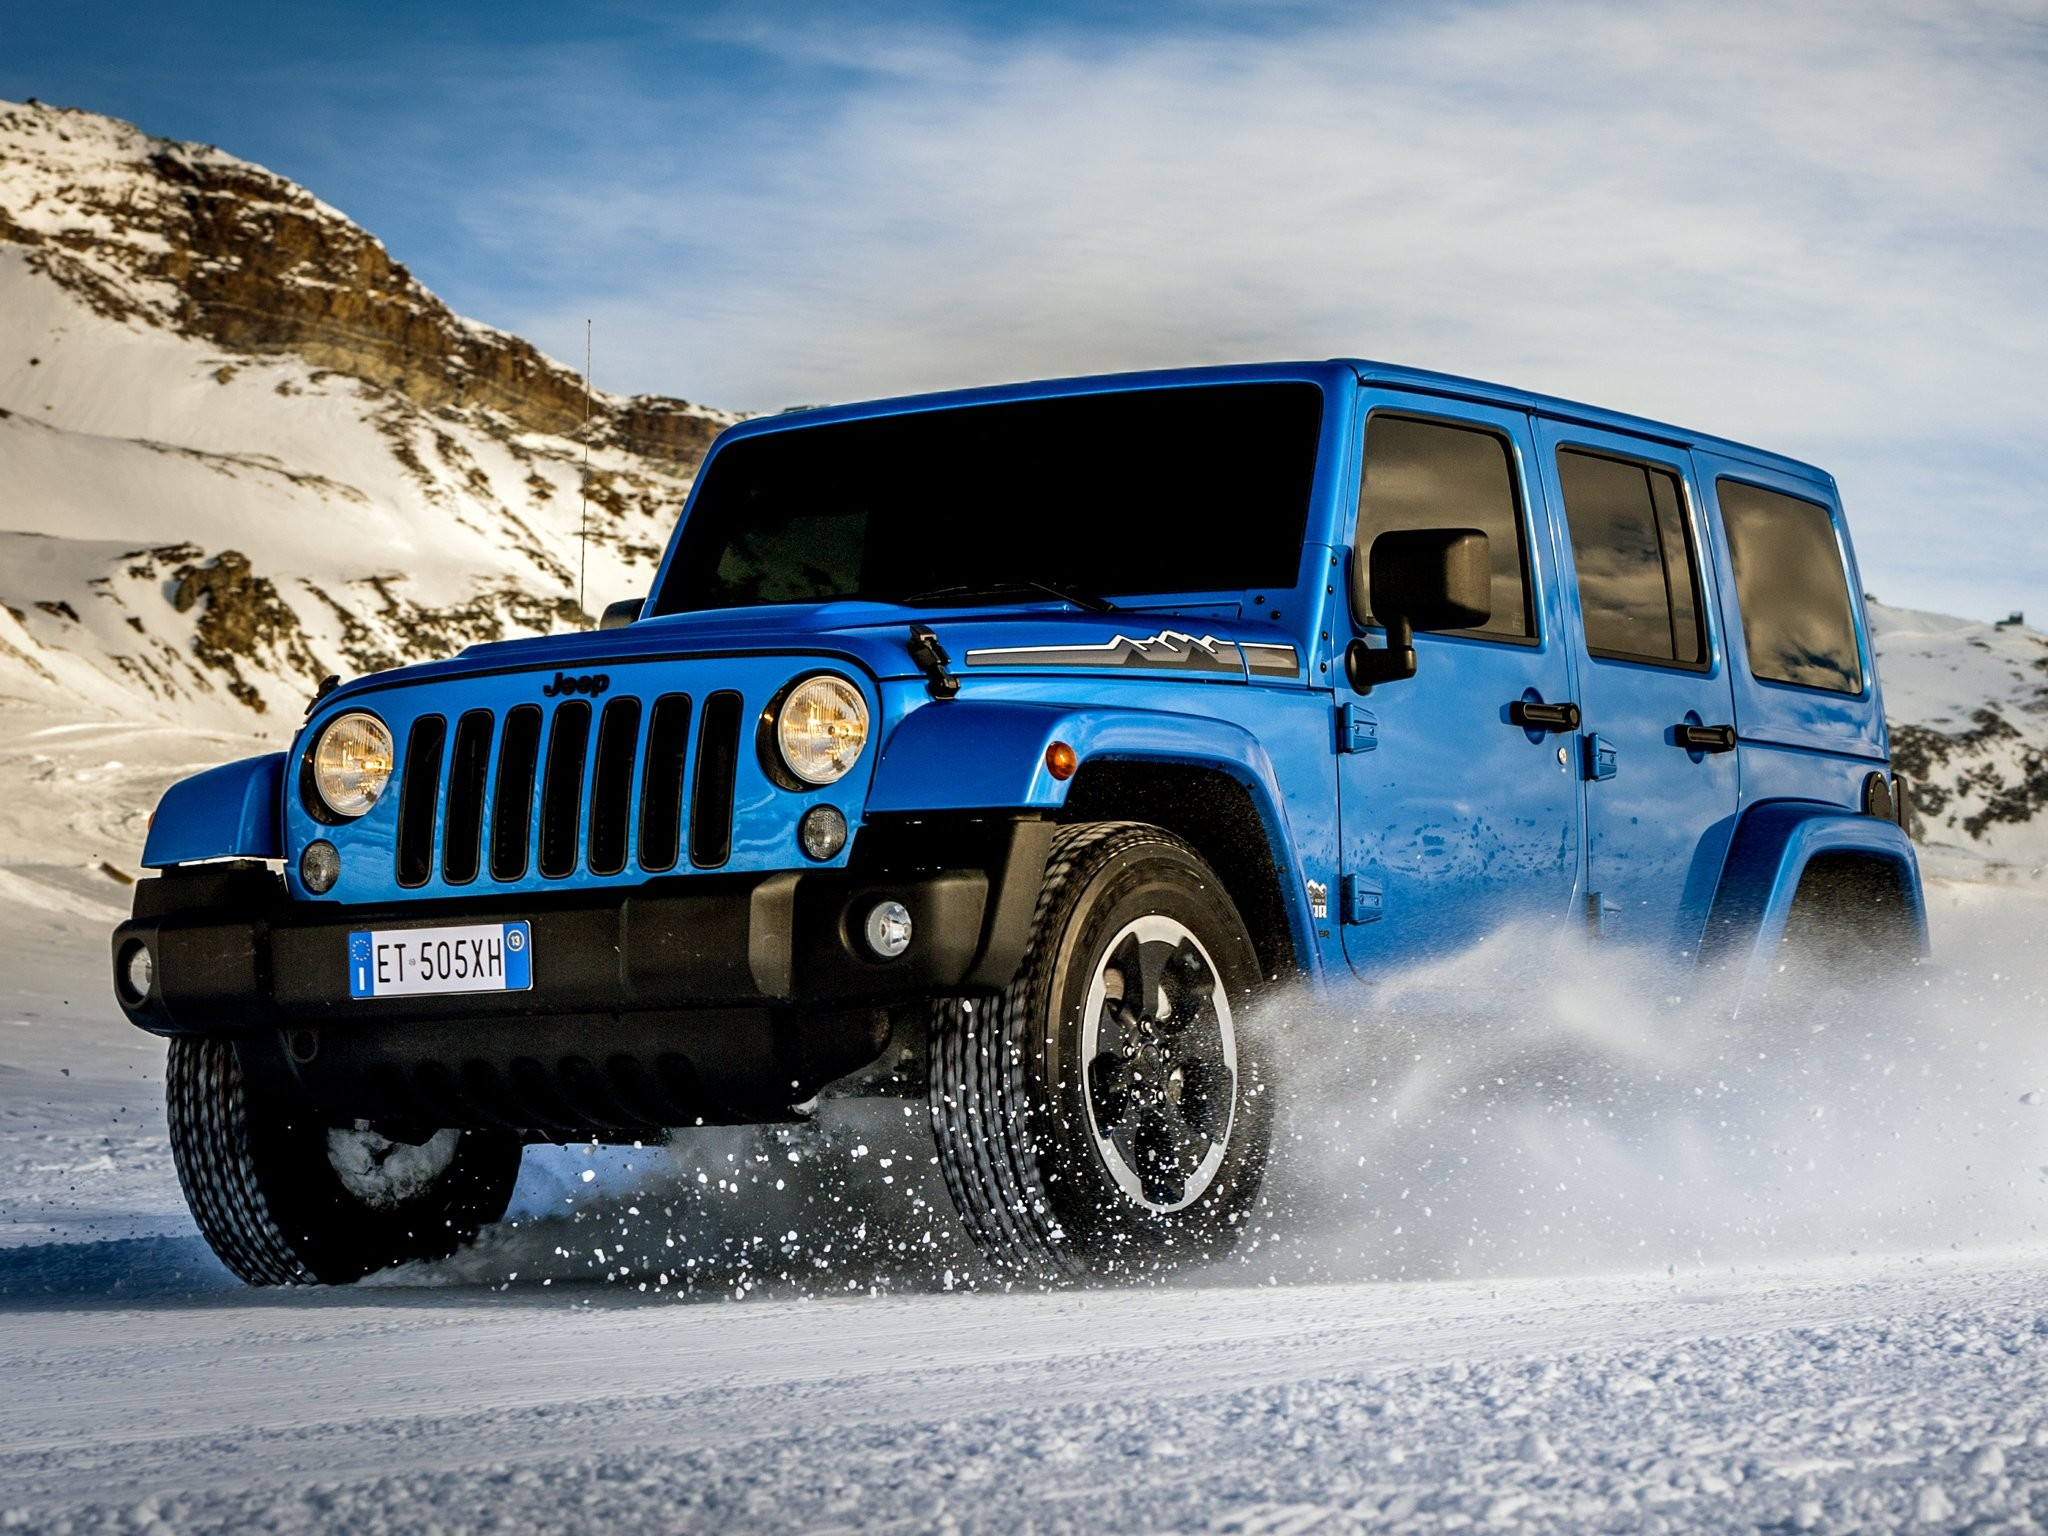 Res: 2048x1536, 2014 Jeep Wrangler Unlimited Polar (J-K) 4x4 g wallpaper |  |  245472 | WallpaperUP